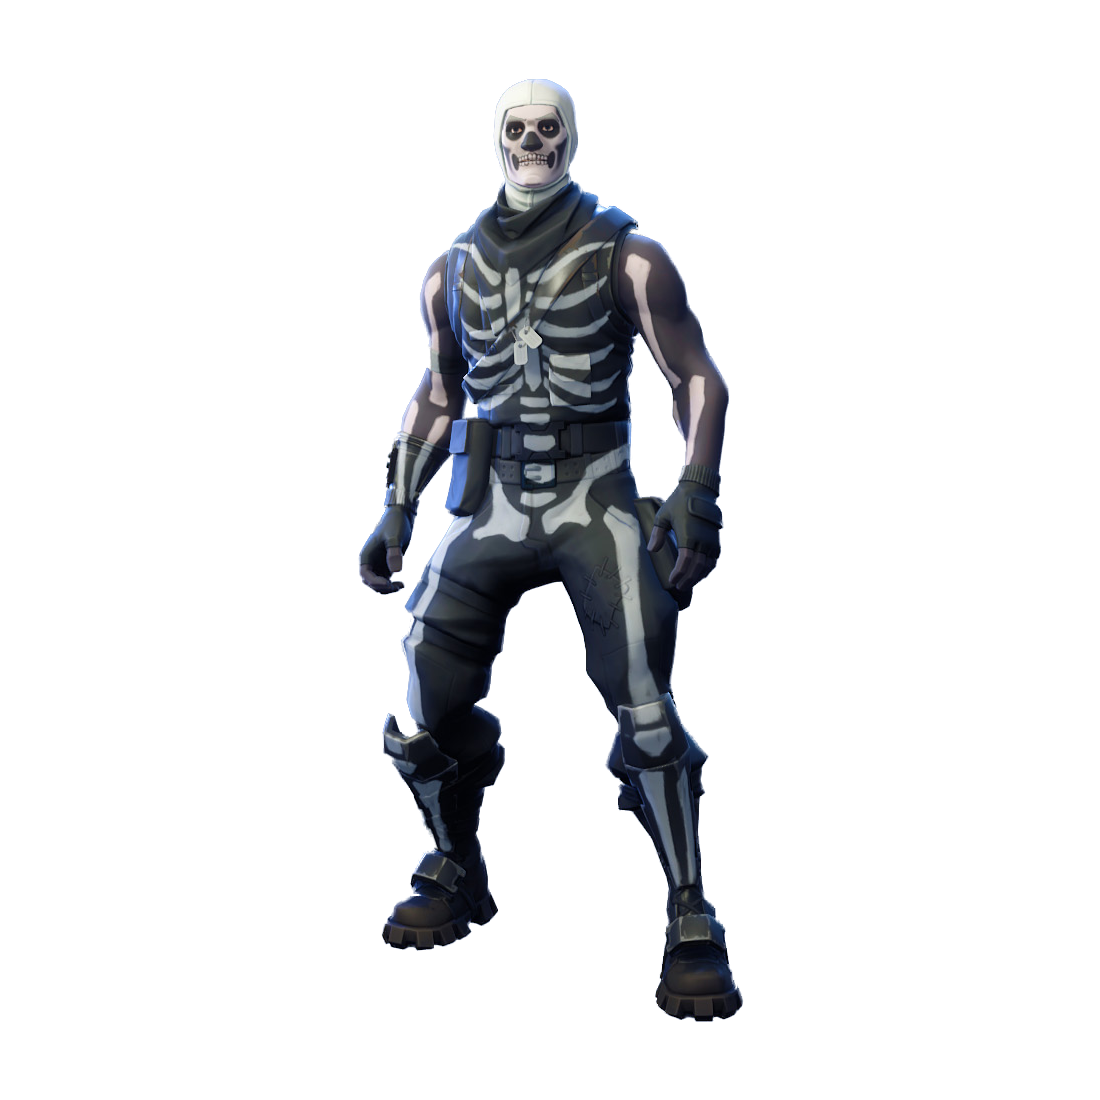 Skull trooper clipart phone wallpaper. Fortnite png image purepng